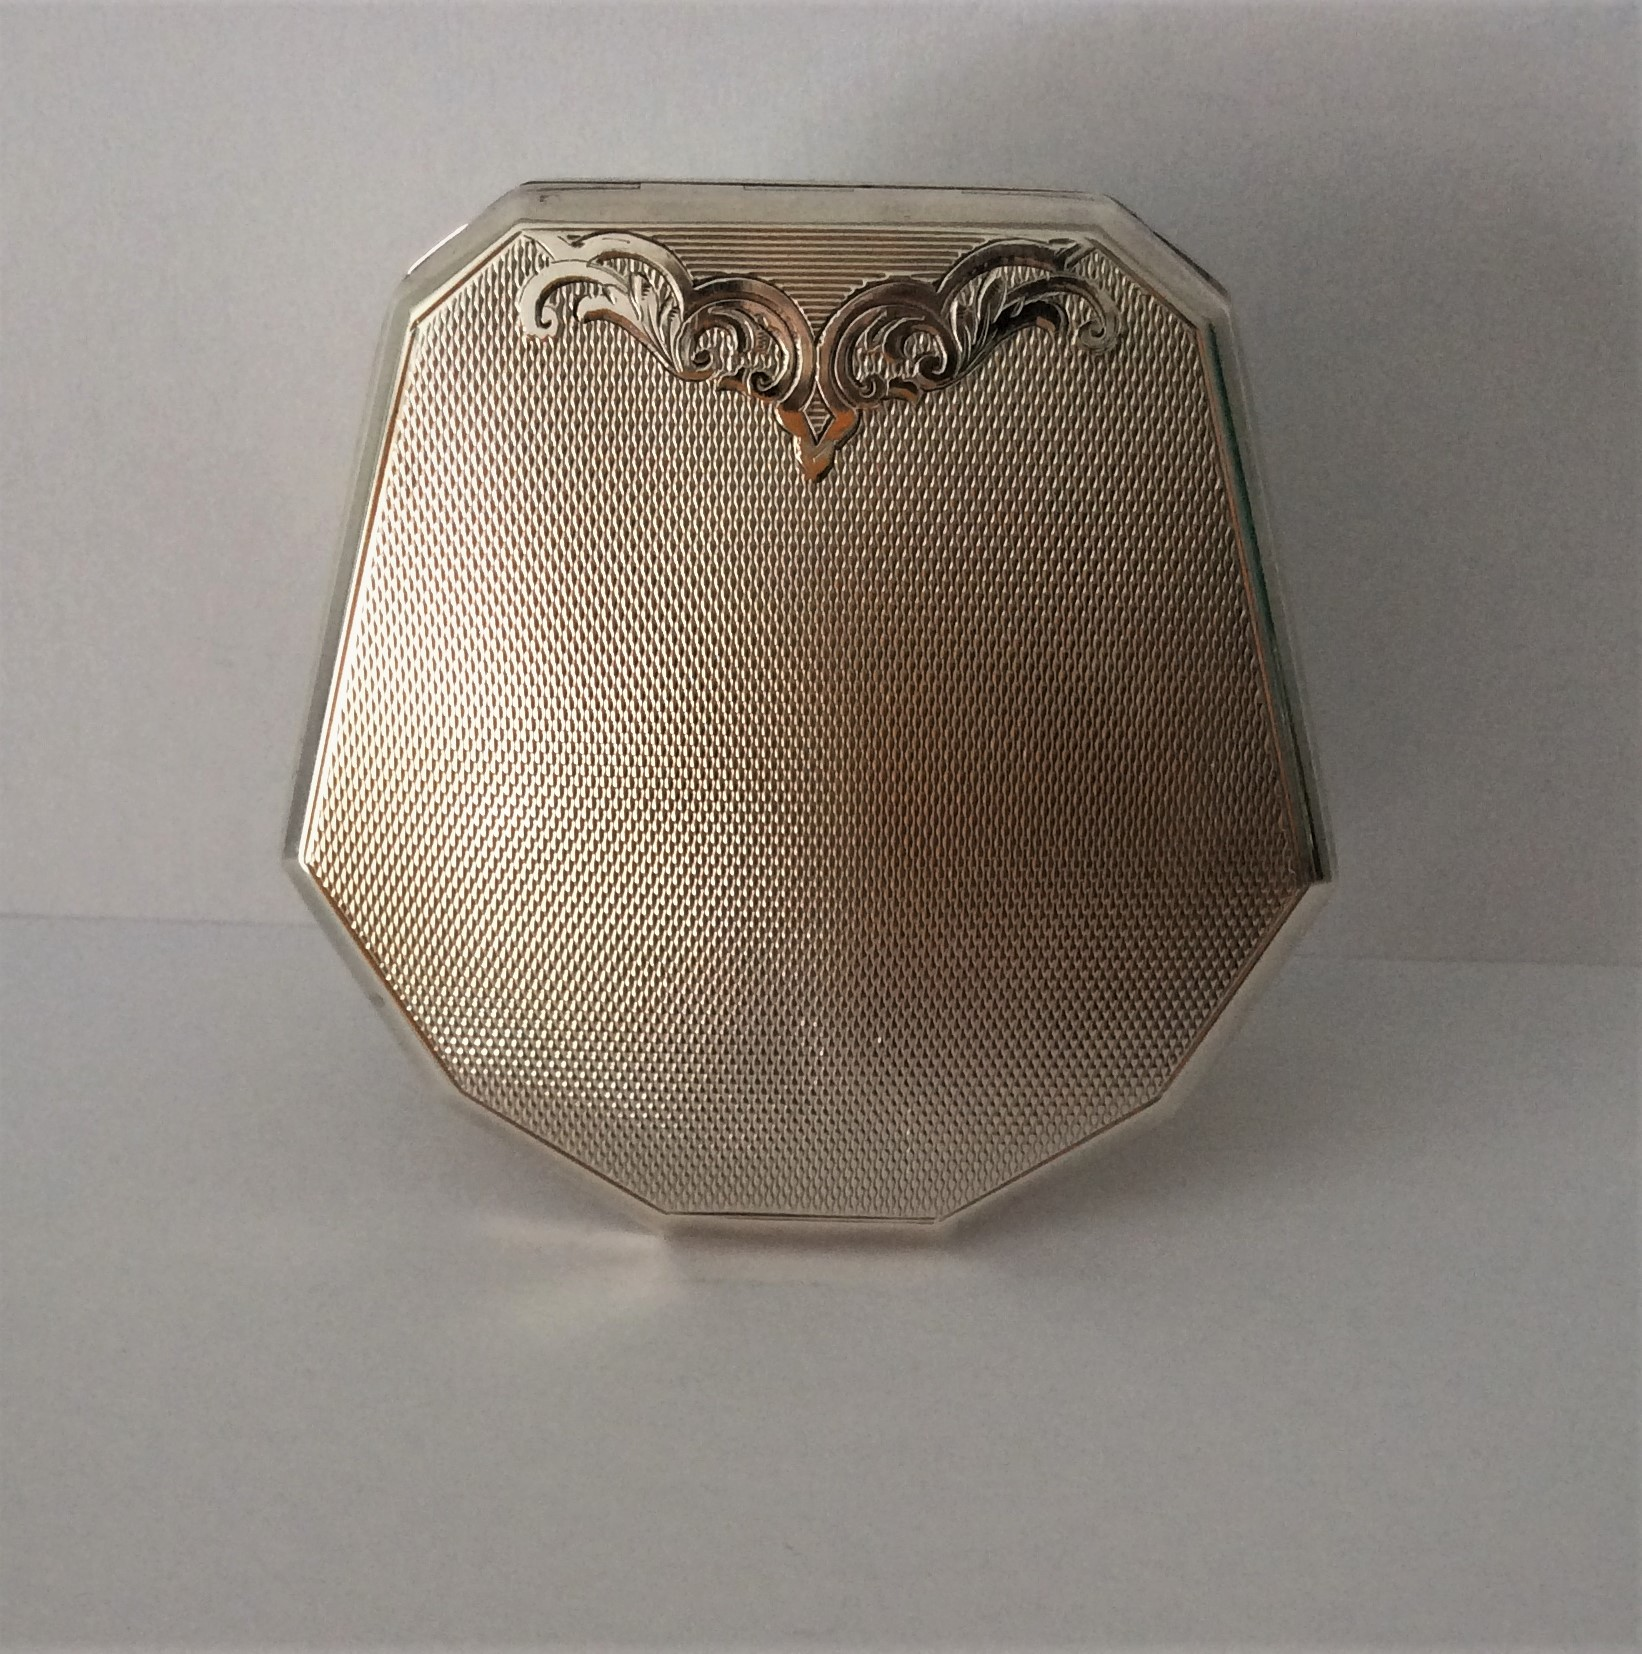 Vintage 40s Sterling Silver Art Deco Style Engine Turned Powder Compact.  Size: 7cm x 7cm  Weight 77g